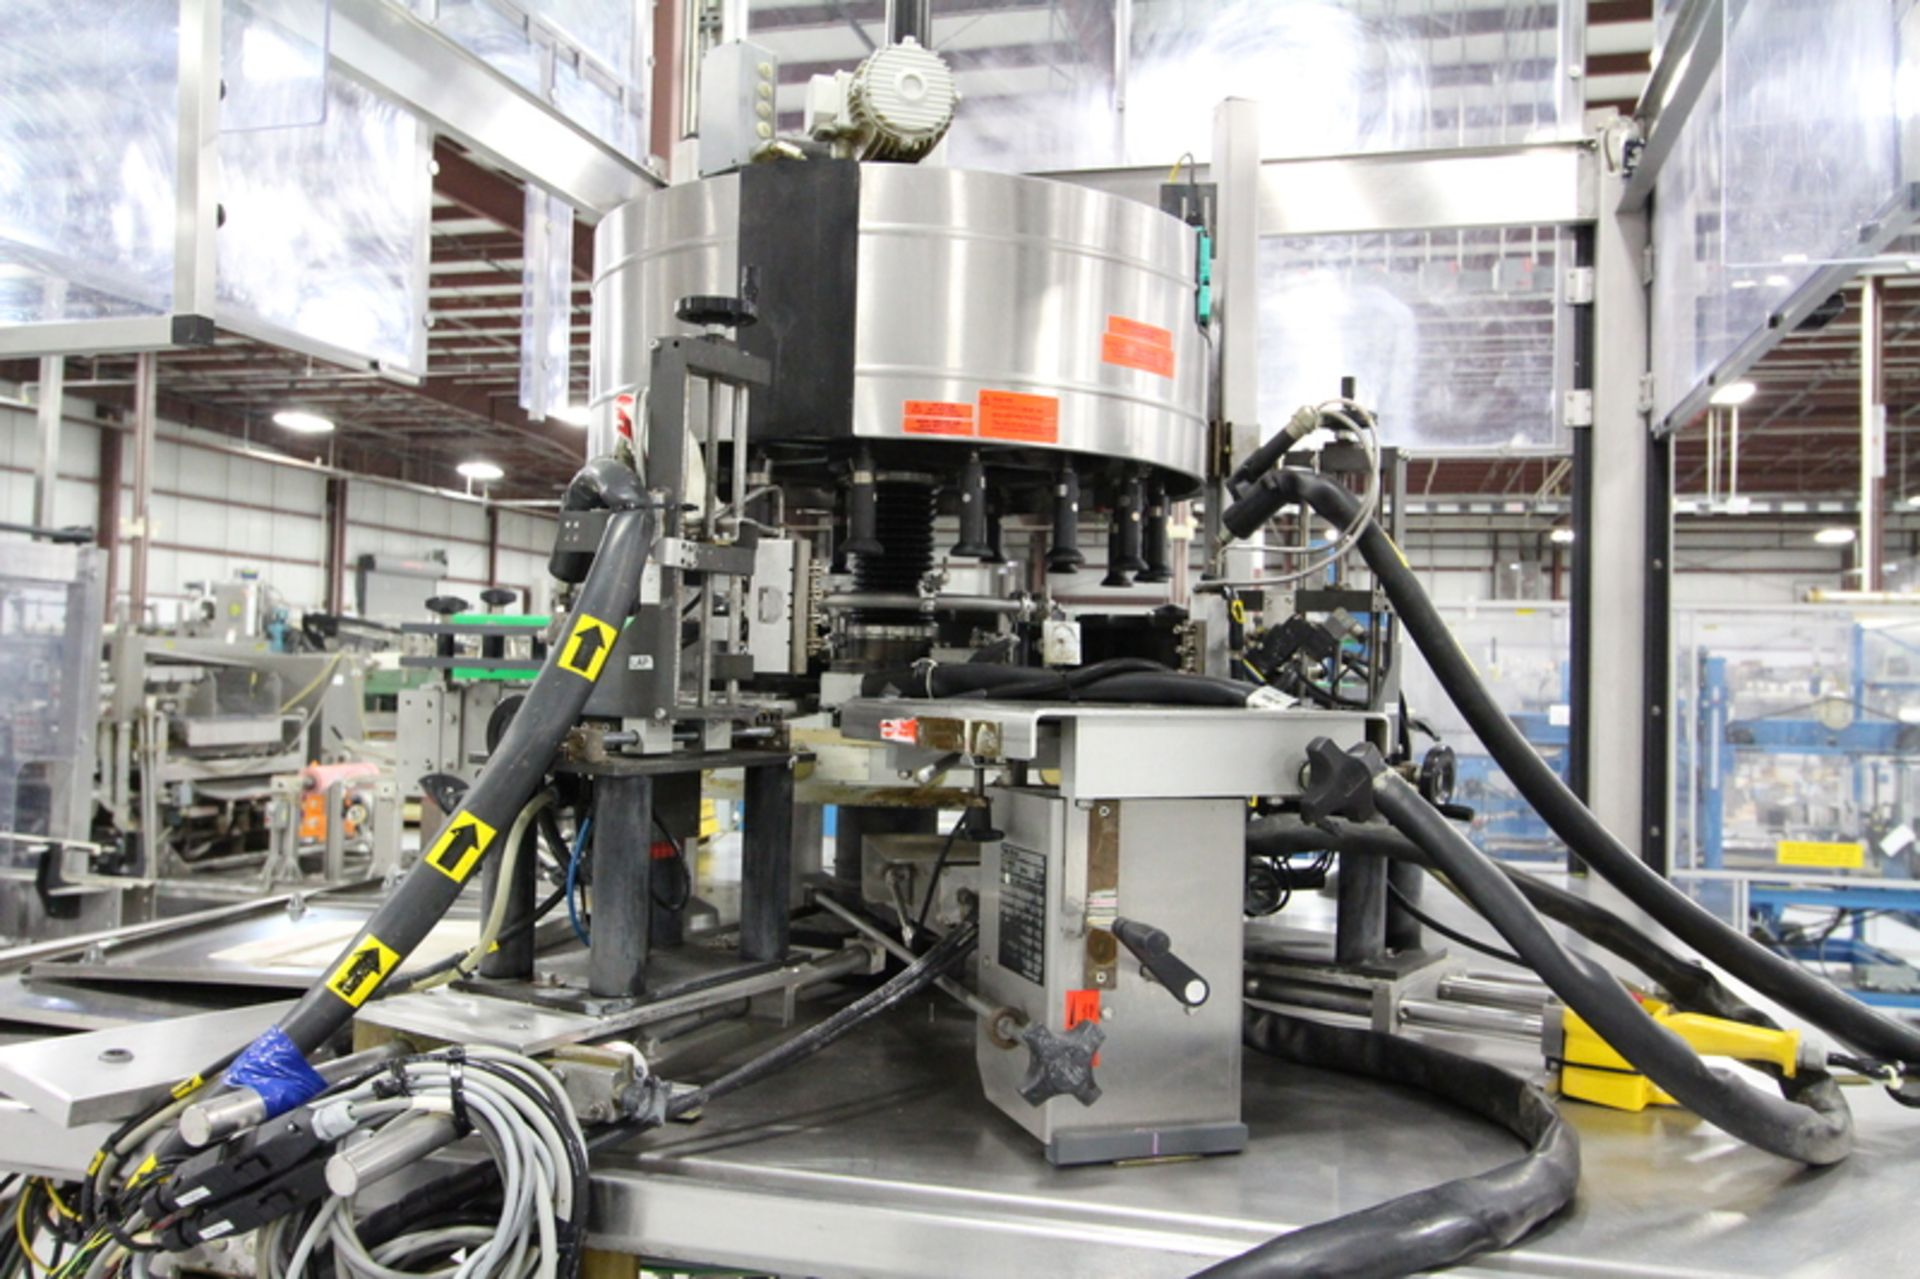 2003 Krones 18-Head Canmatic Wrap Around Rotary Labeler - Image 2 of 3